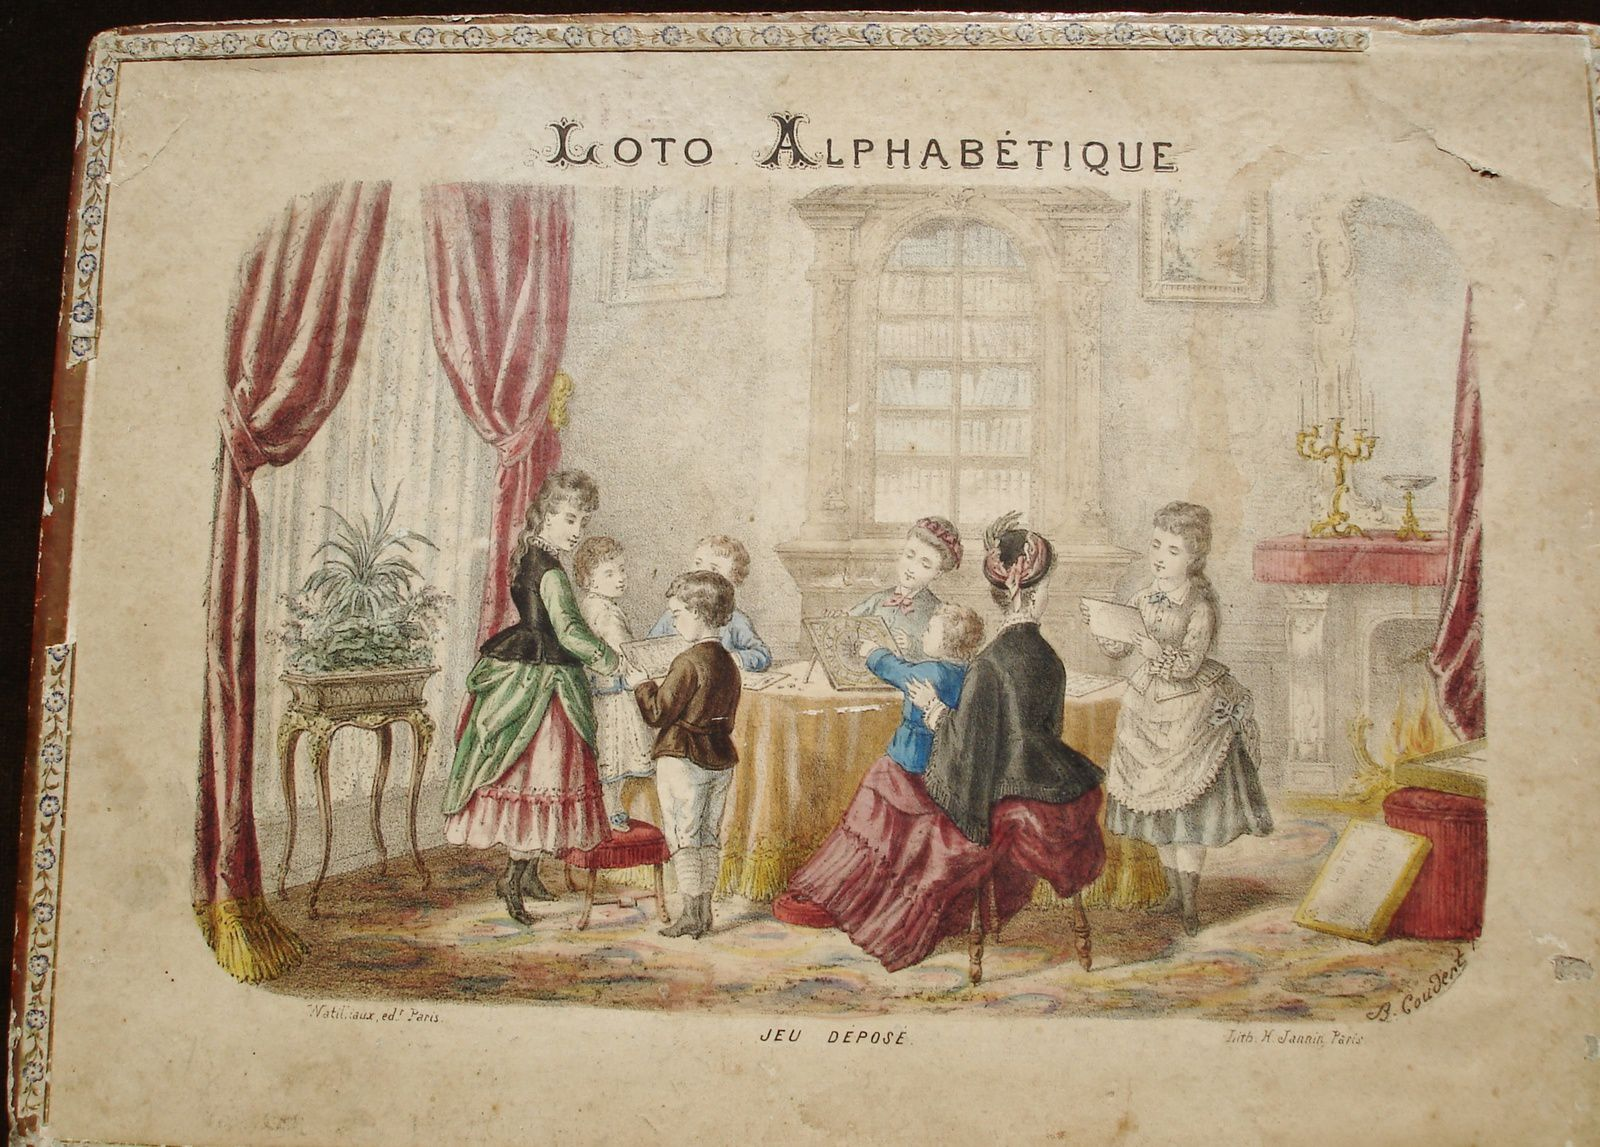 coffret de loto alphabétique,collection Michelle D.